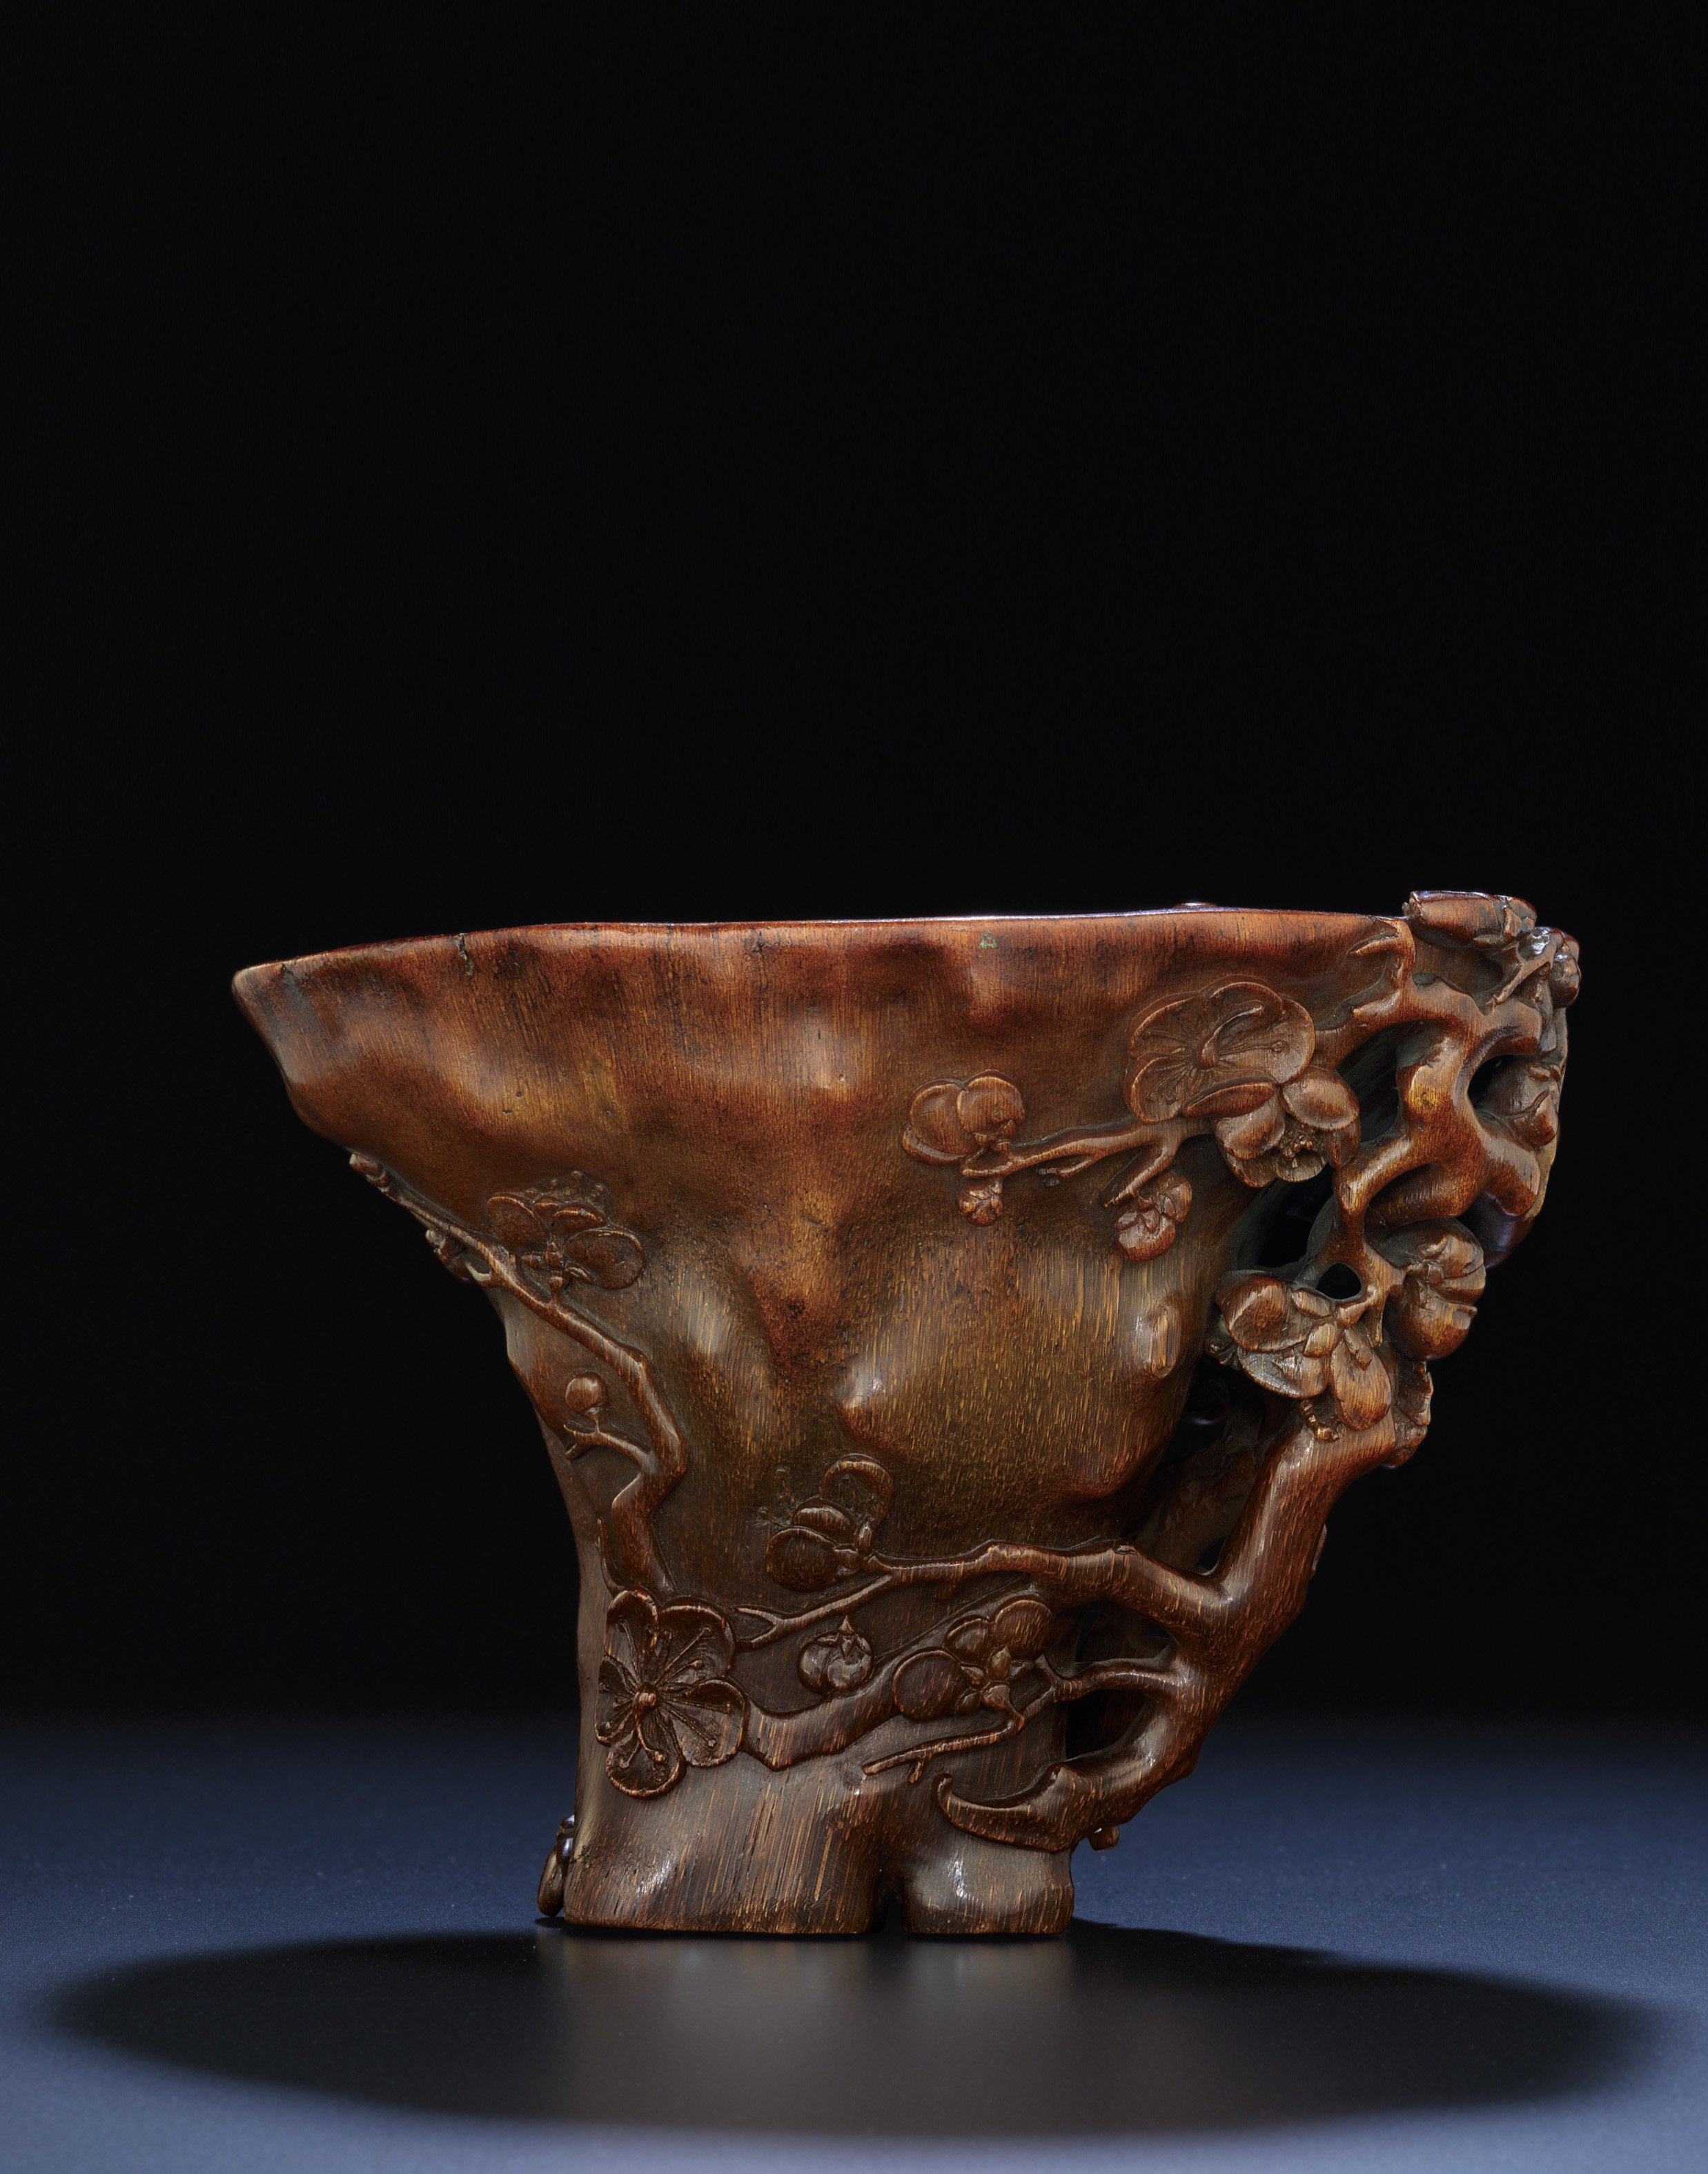 AN EXQUISITELY CARVED RHINOCEROS HORN LIBATION CUP